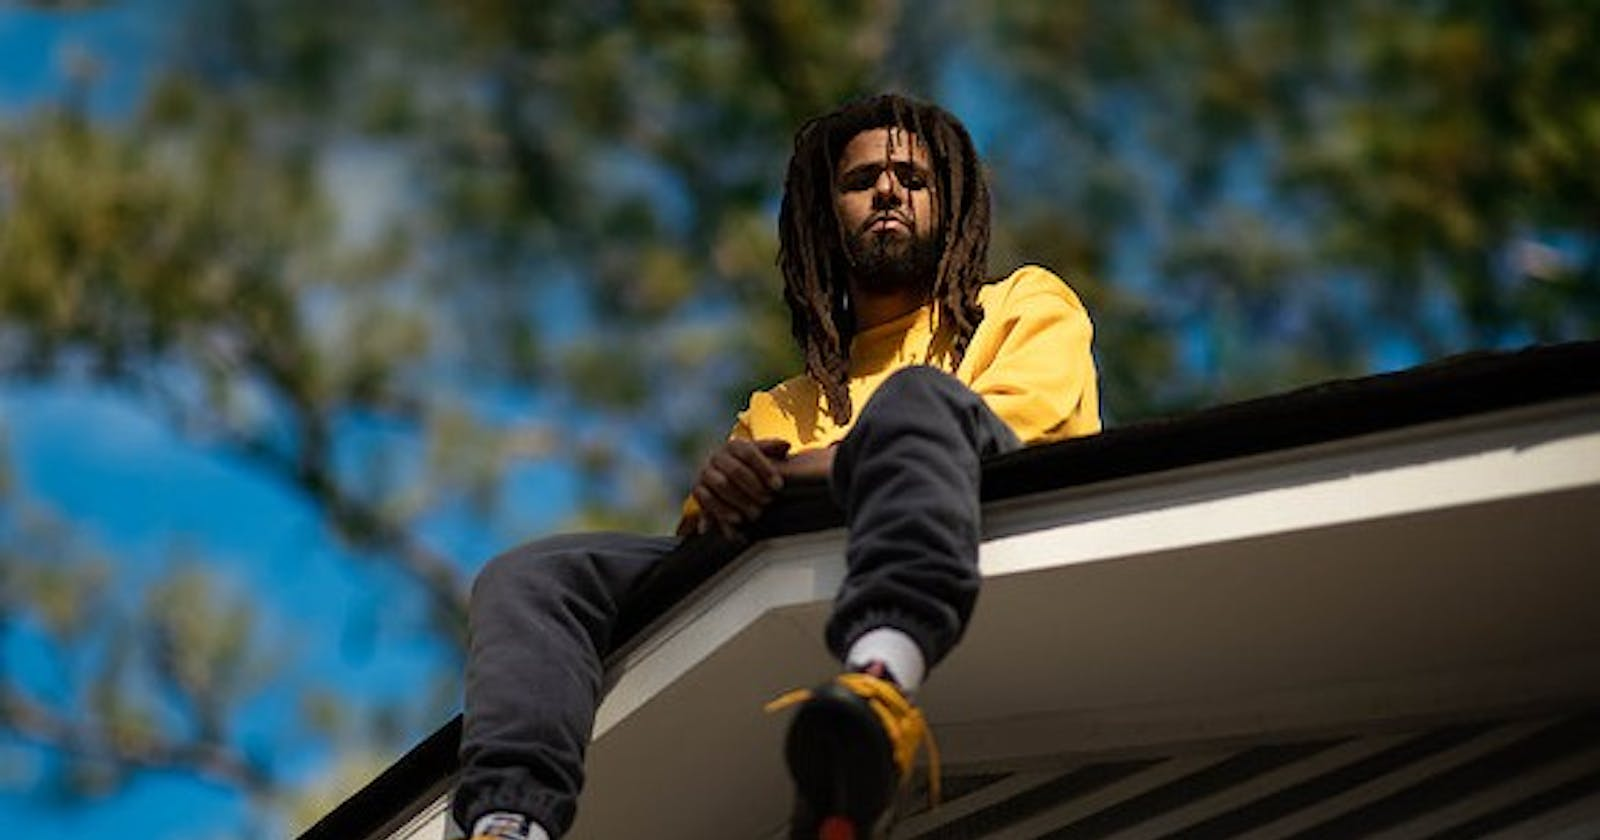 The Journey of J. Cole's Career